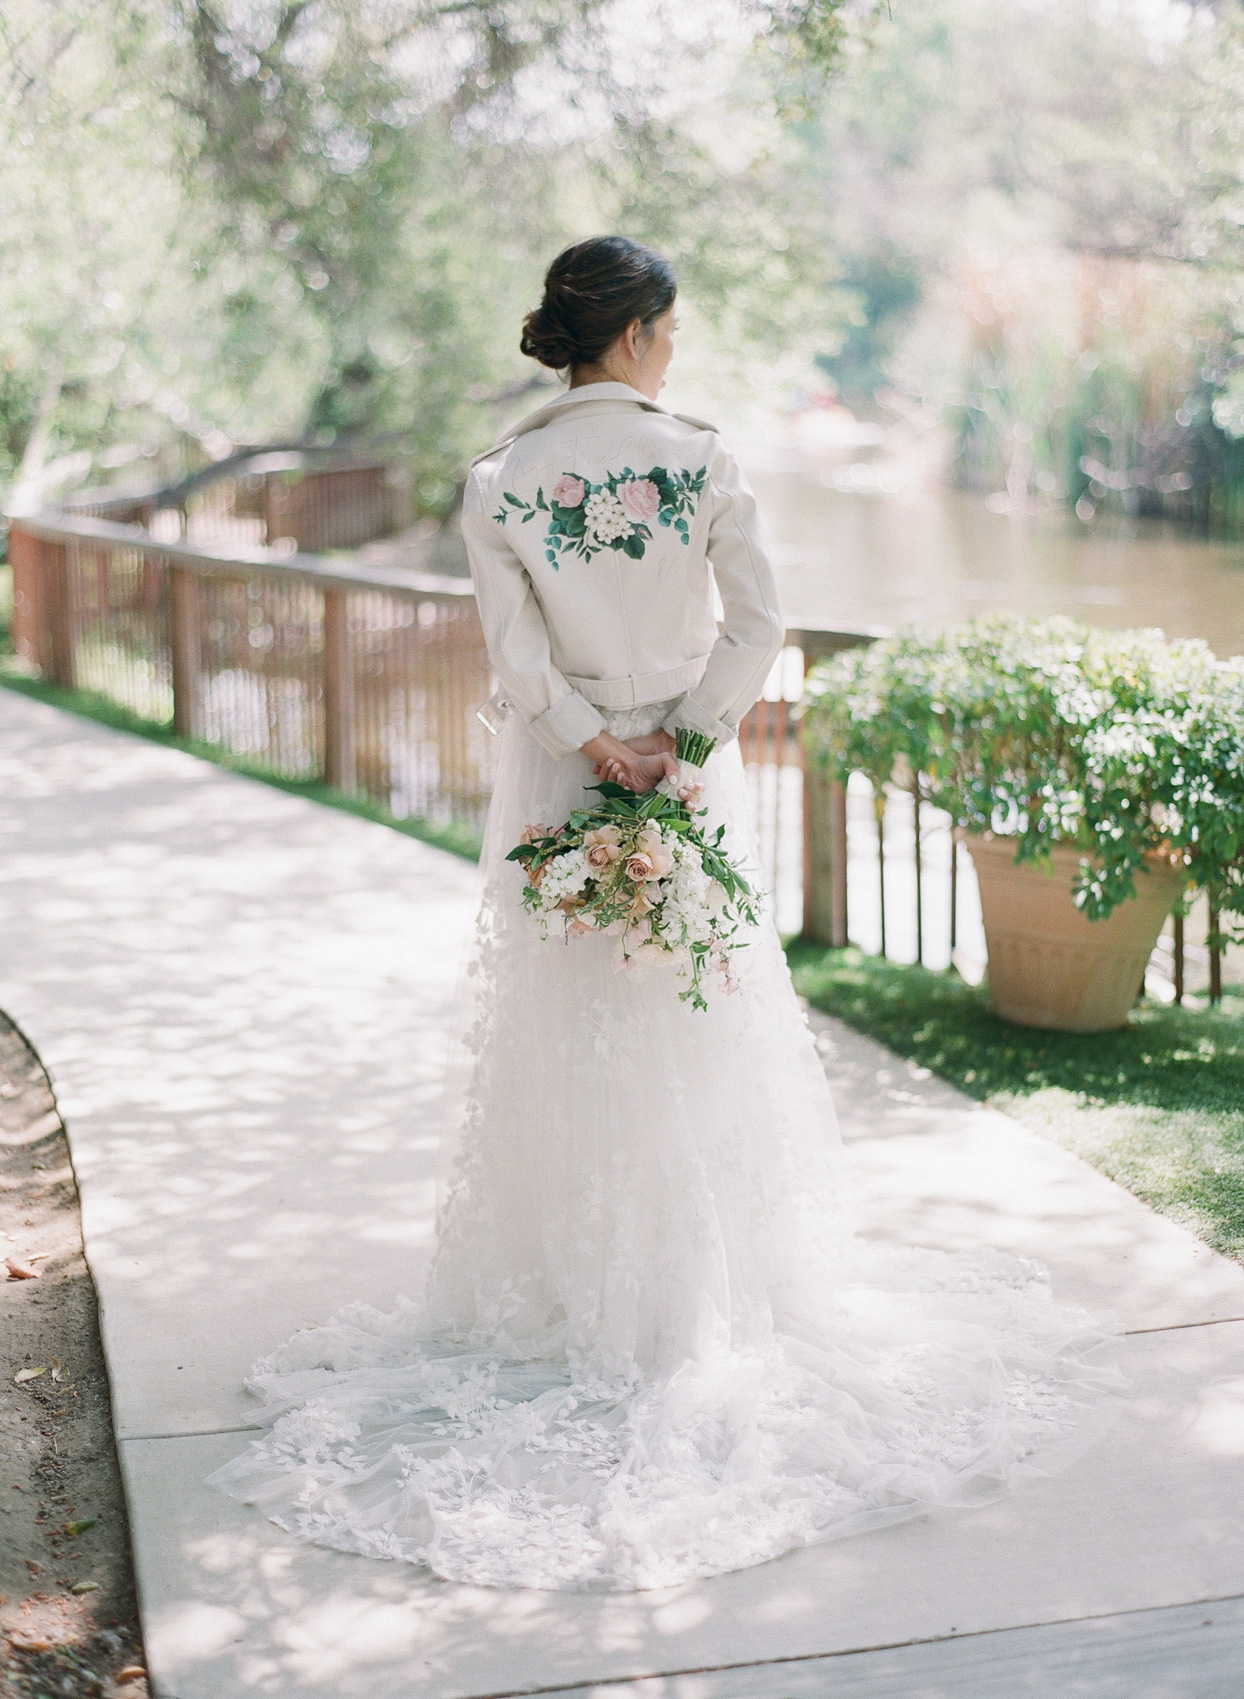 bride in wedding dress with white leather jacket